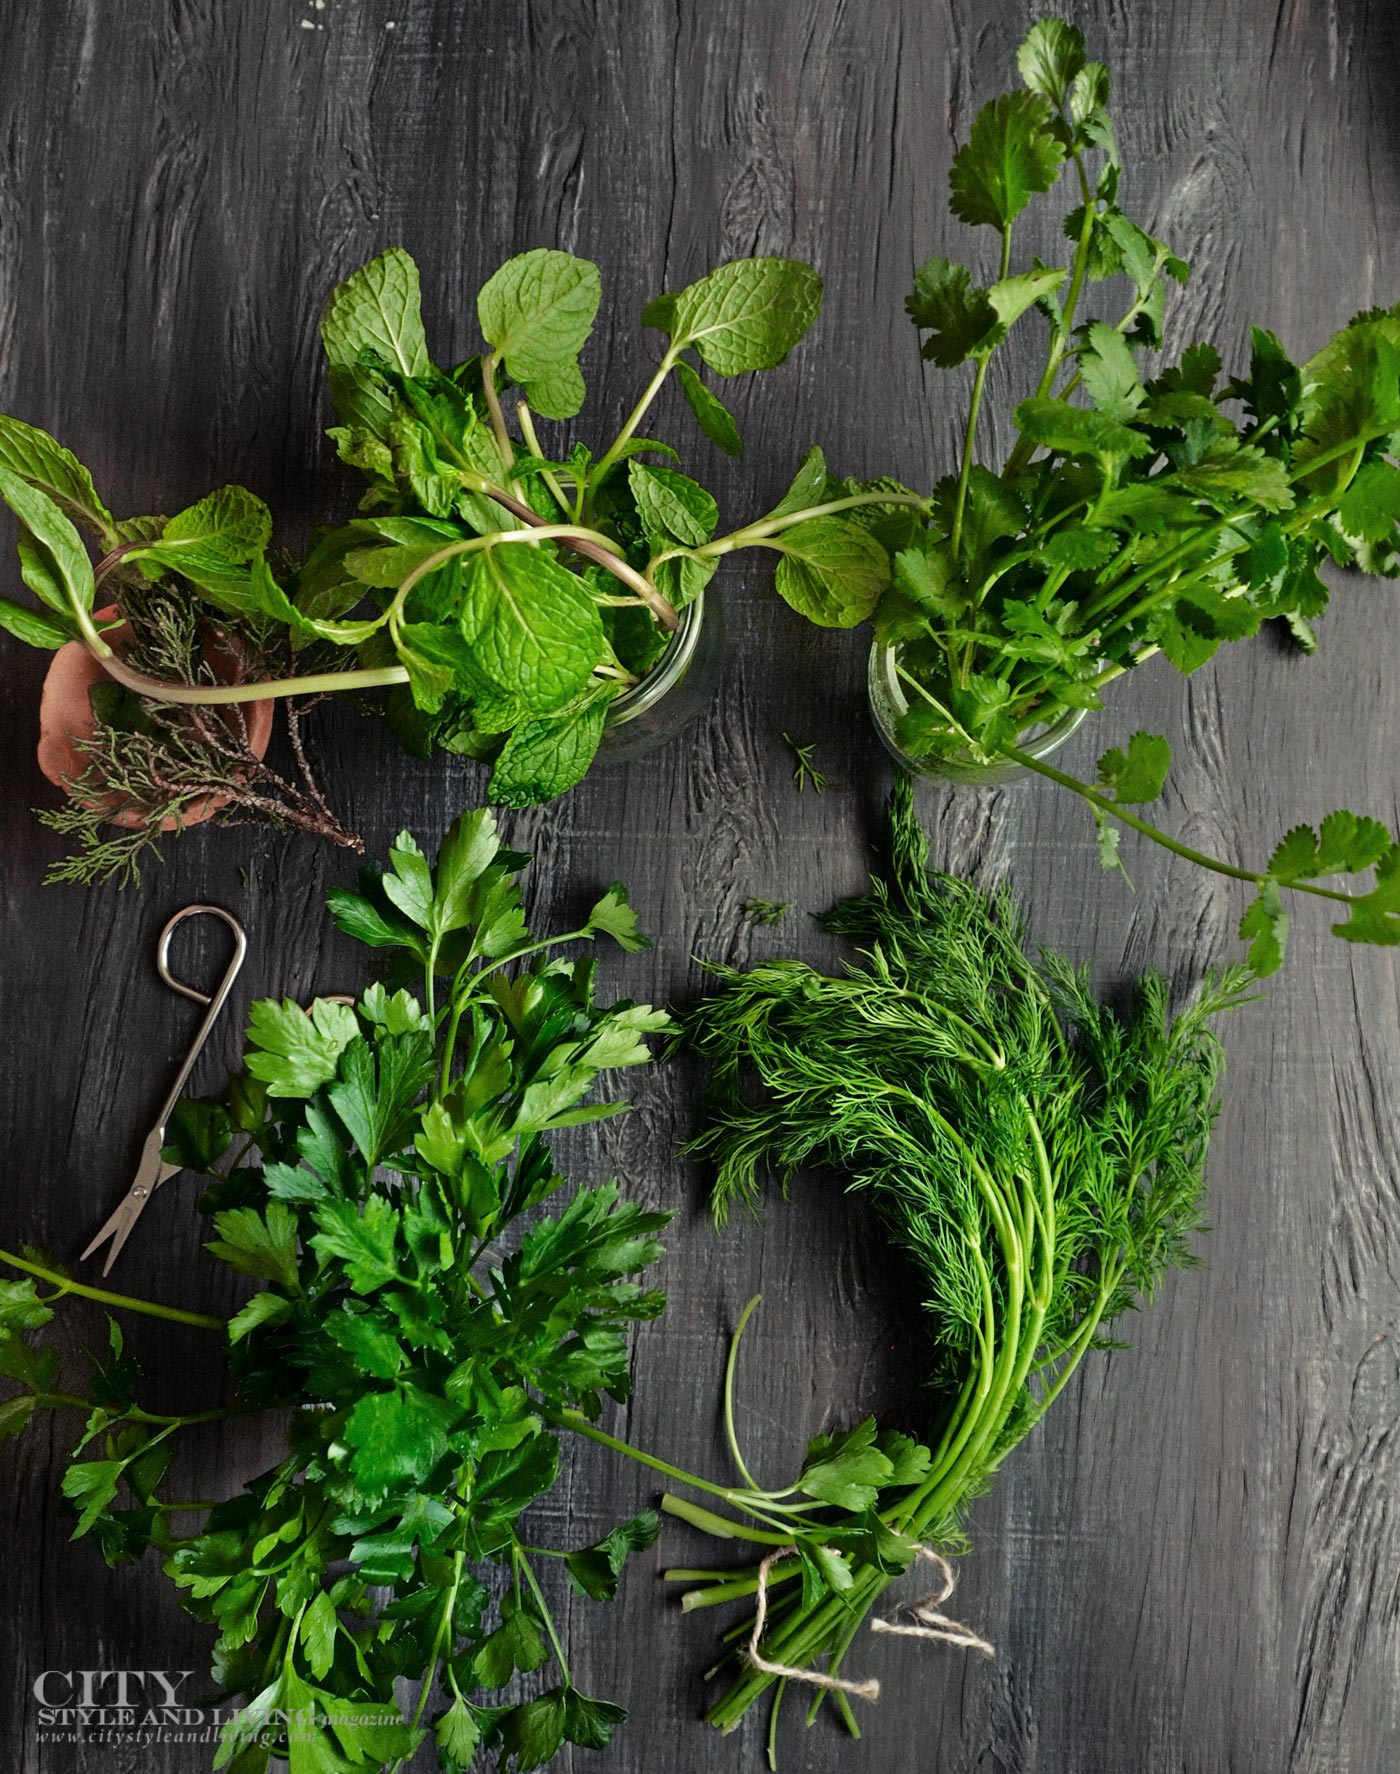 City Style and Living Magazine Food Fall 2019 Herbs to brighten any dish